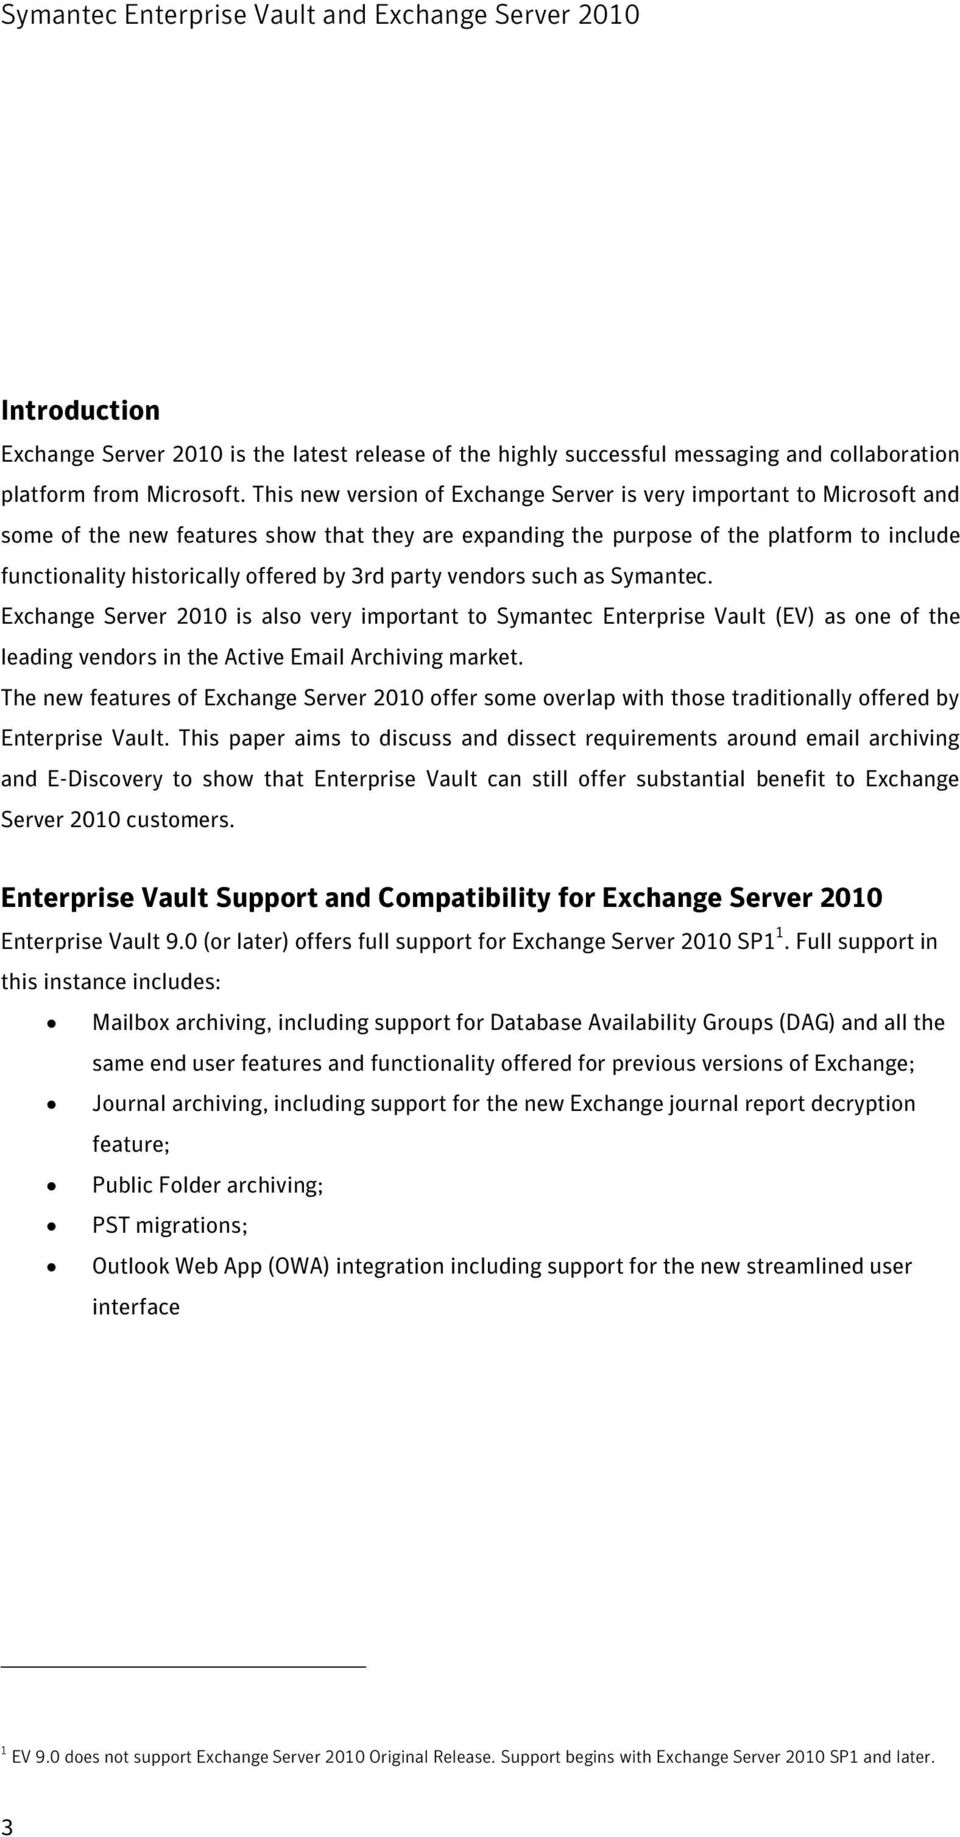 by 3rd party vendors such as Symantec. Exchange Server 2010 is also very important to Symantec Enterprise Vault (EV) as one of the leading vendors in the Active Email Archiving market.